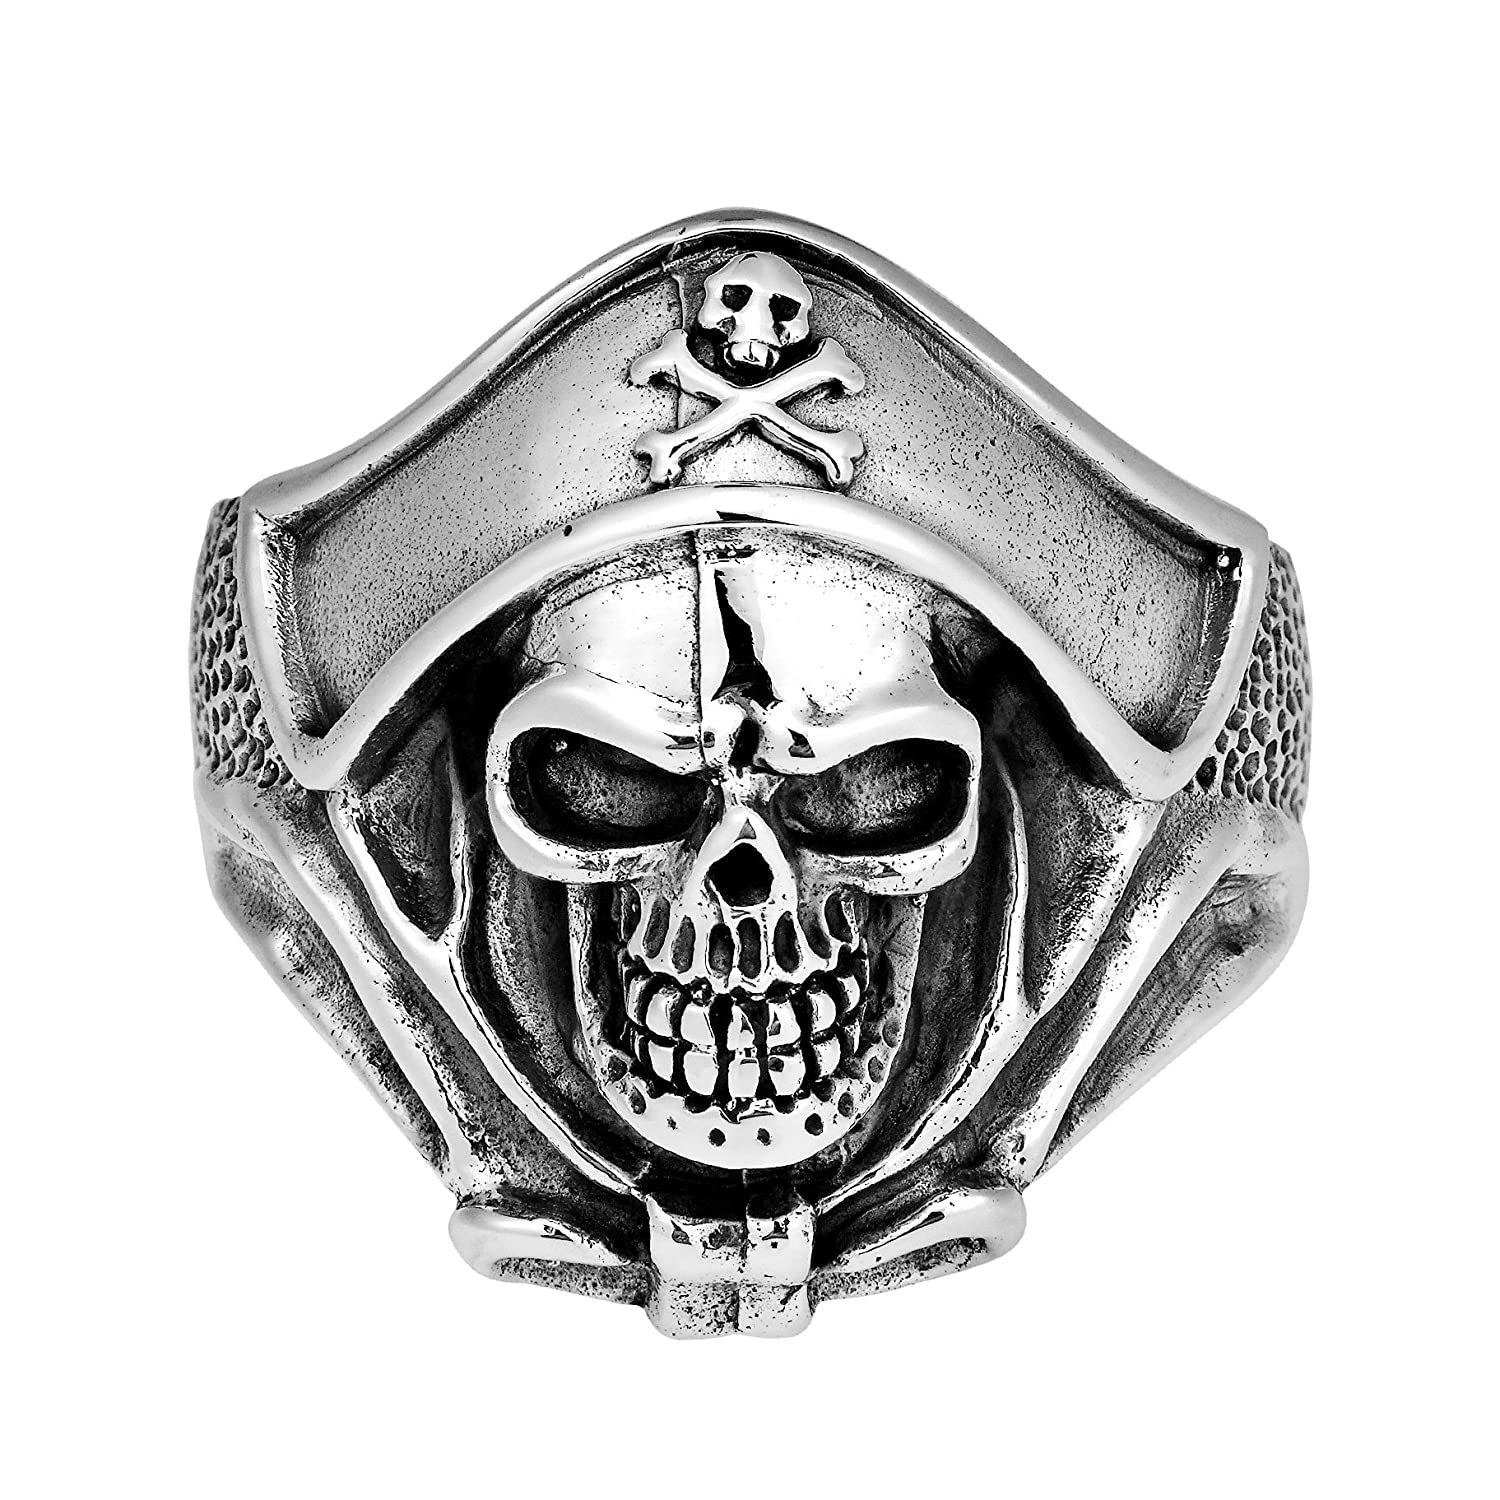 Sterling Silver Men's Buccaneer Pirate Skull Ring - DeluxeAdultCostumes.com